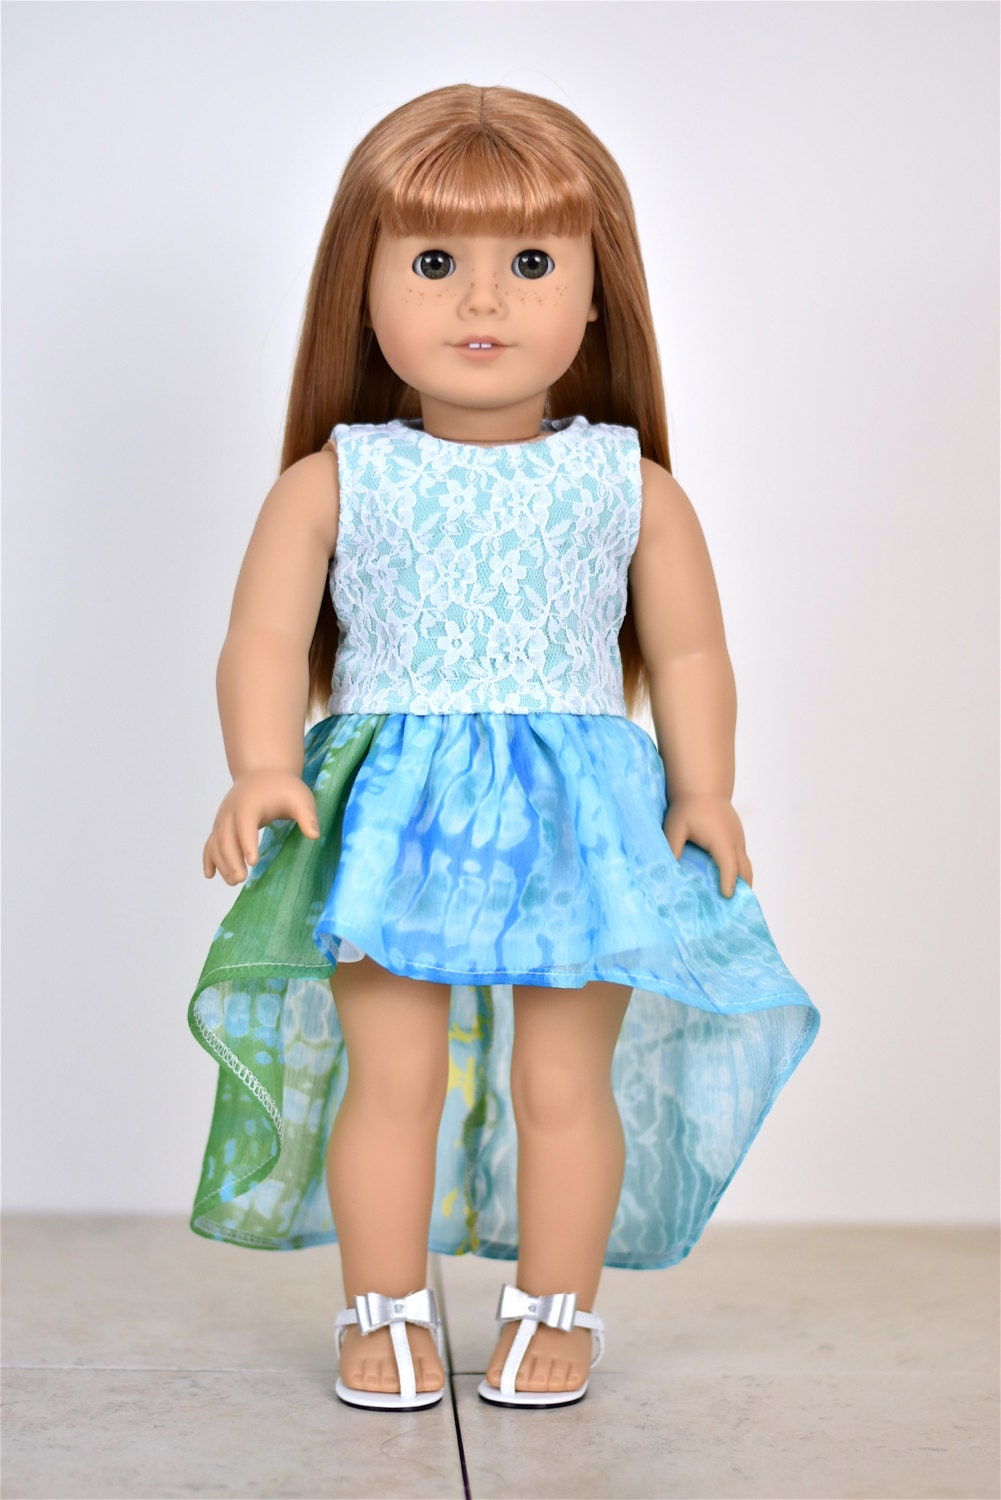 18 inches Doll Clothes 10 Different Unique Styles Well Fit for American Girls Doll, Doll and Me, My Life Doll, and My Generation Doll by Party Zealot. by Party Zealot. $ $ 23 95 Prime. FREE Shipping on eligible orders. out of 5 stars Manufacturer recommended age: 3 Years and up.